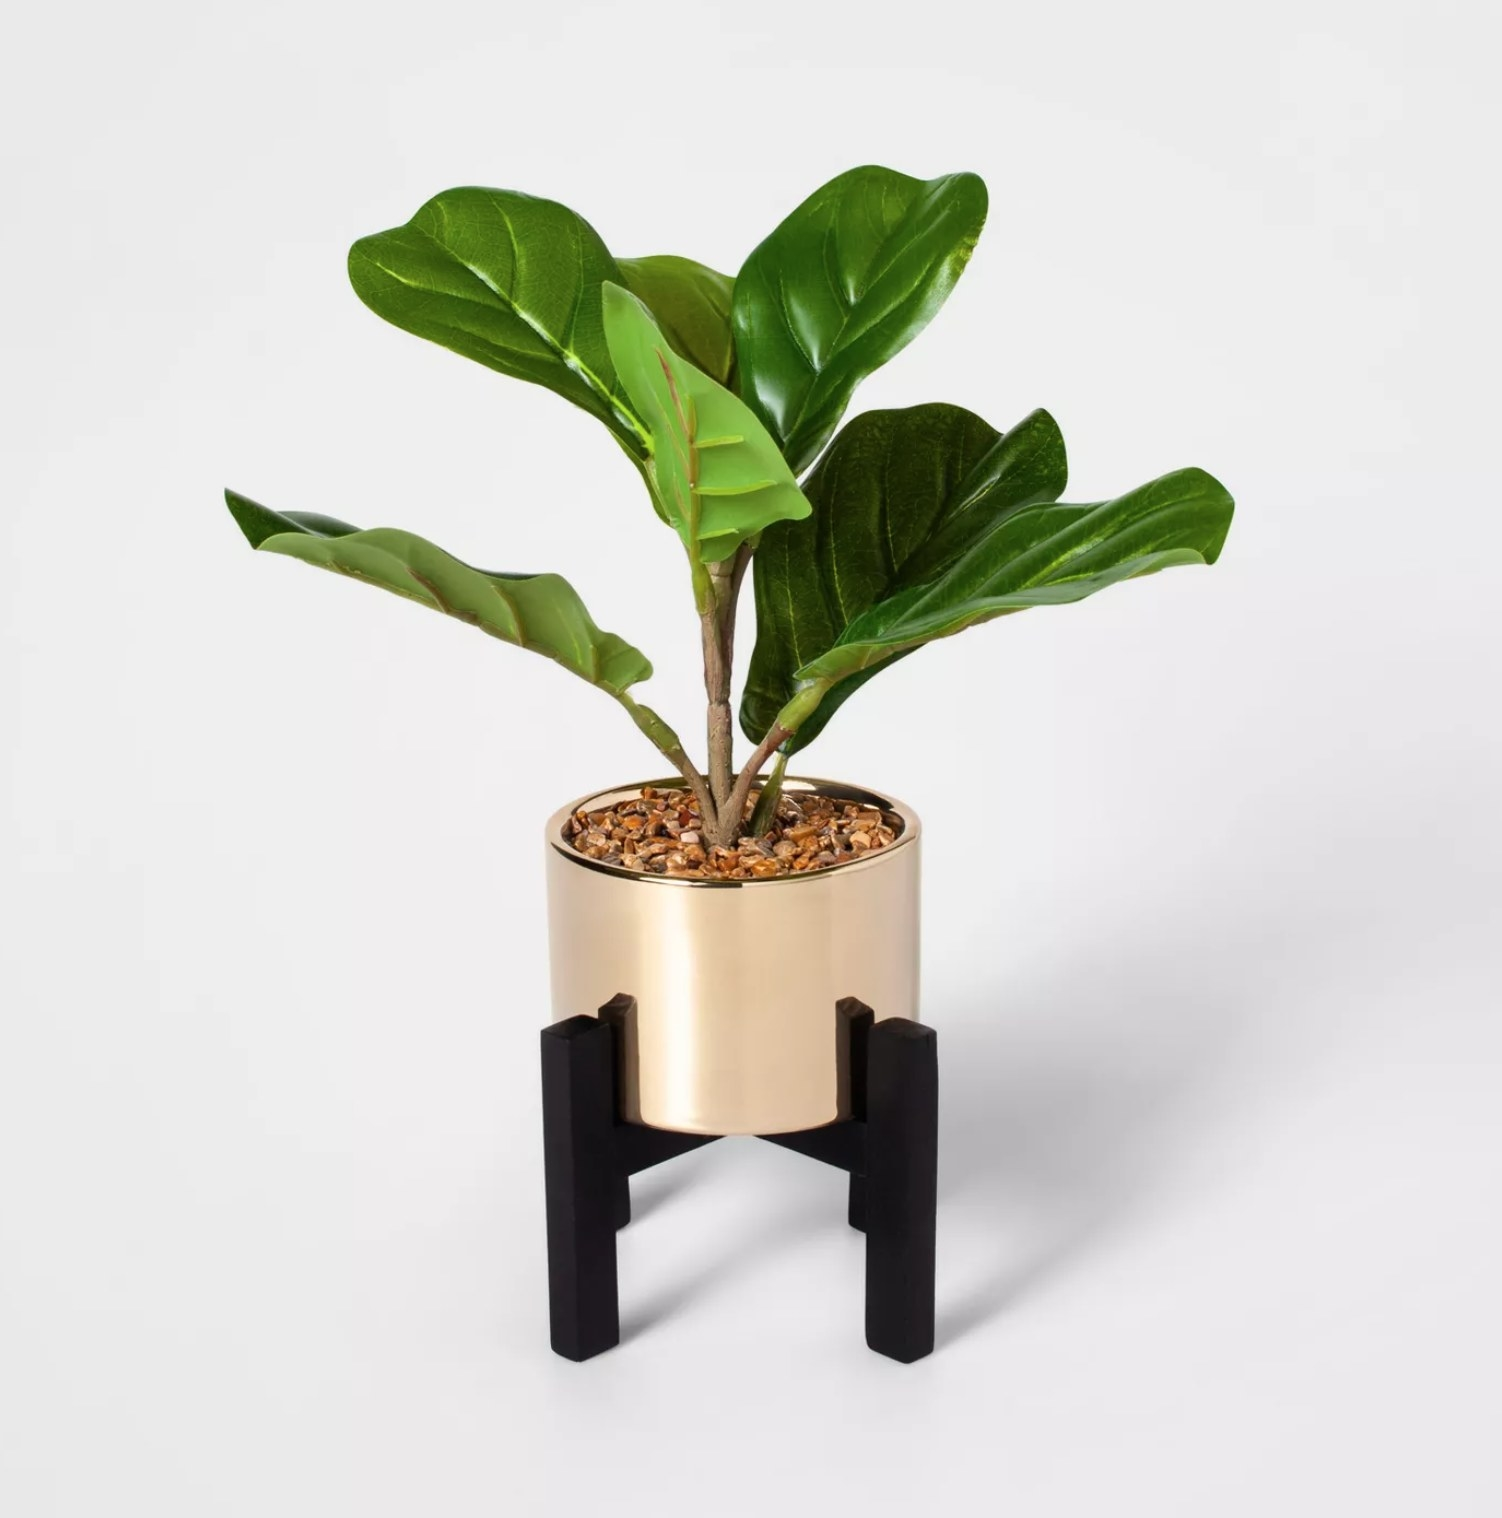 The plant with gold base on short black stands